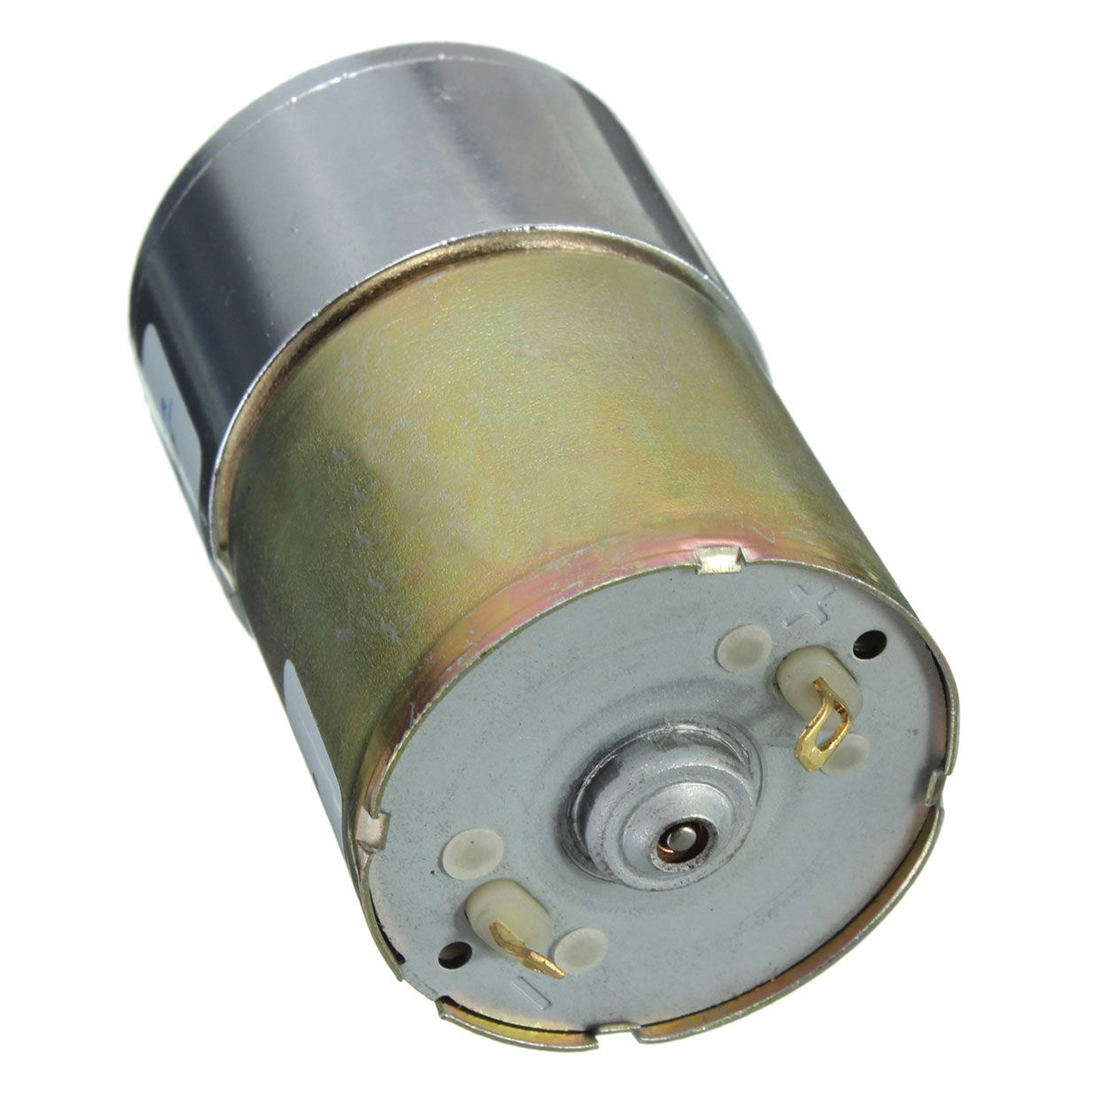 Zhengk 12v dc 300 rpm 37gb high torque gearbox electric for High torque electric motor